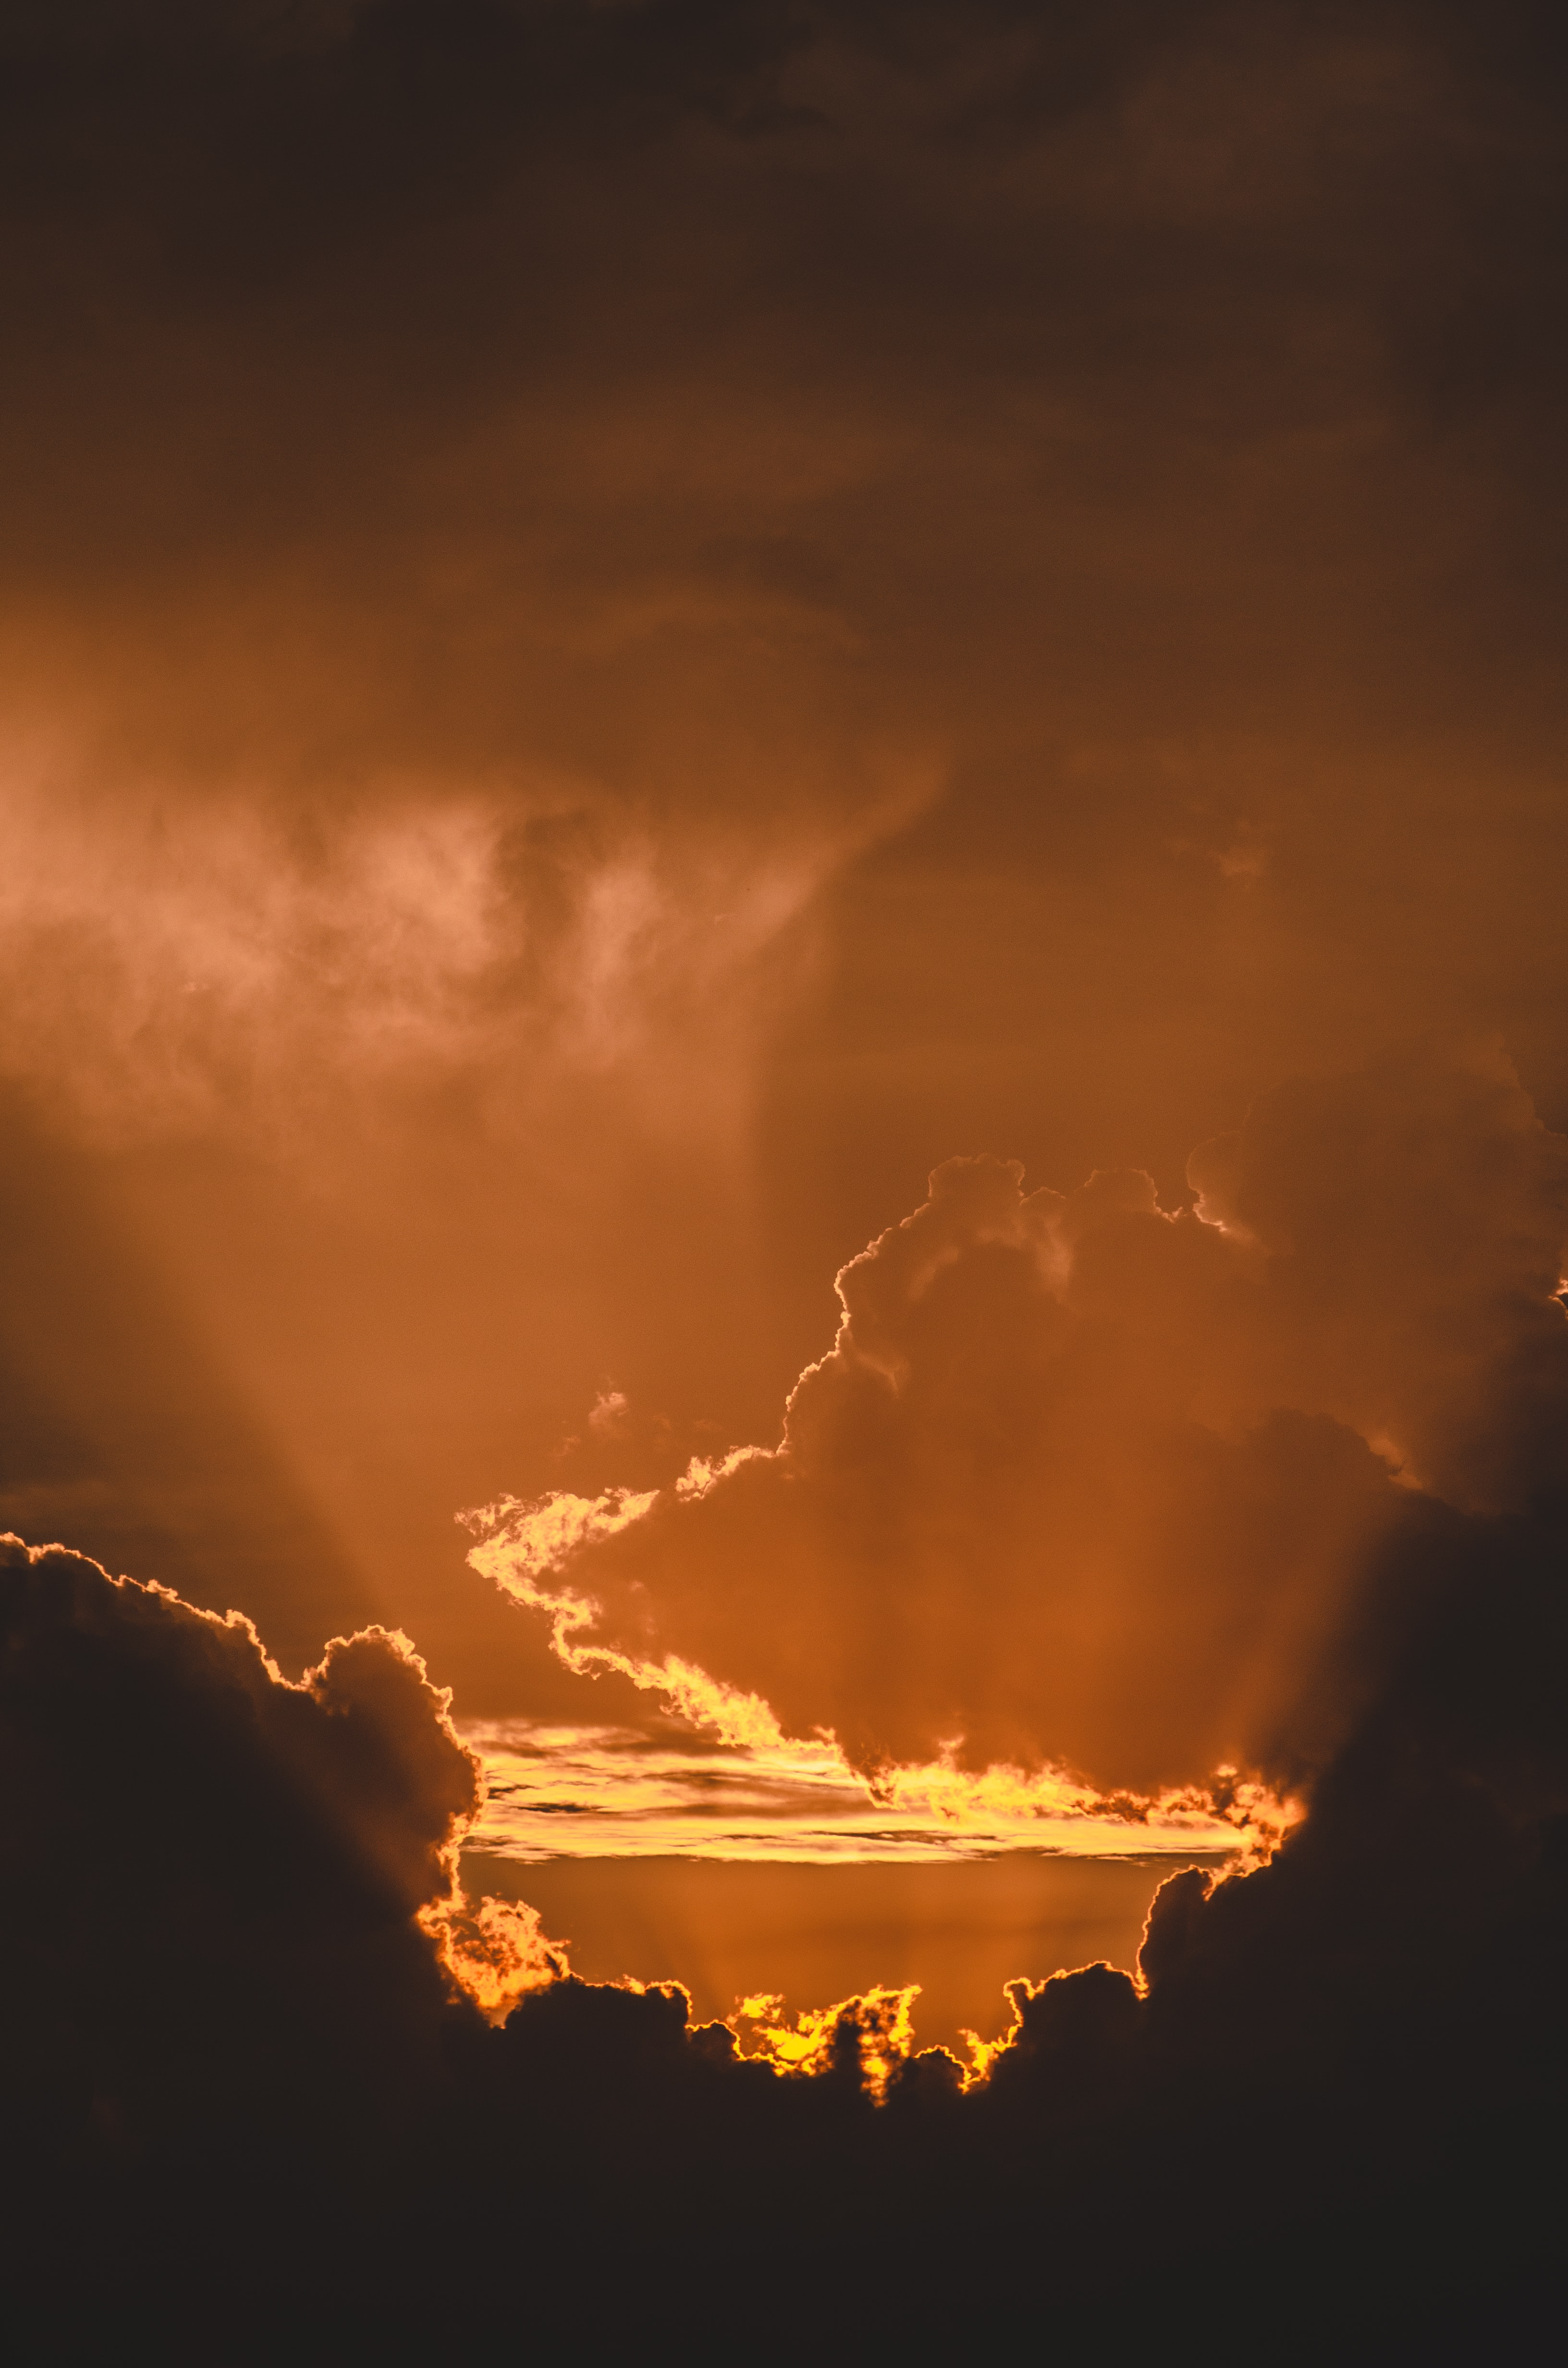 120984 download wallpaper Nature, Sunset, Horizon, Glare, Clouds, Sun screensavers and pictures for free